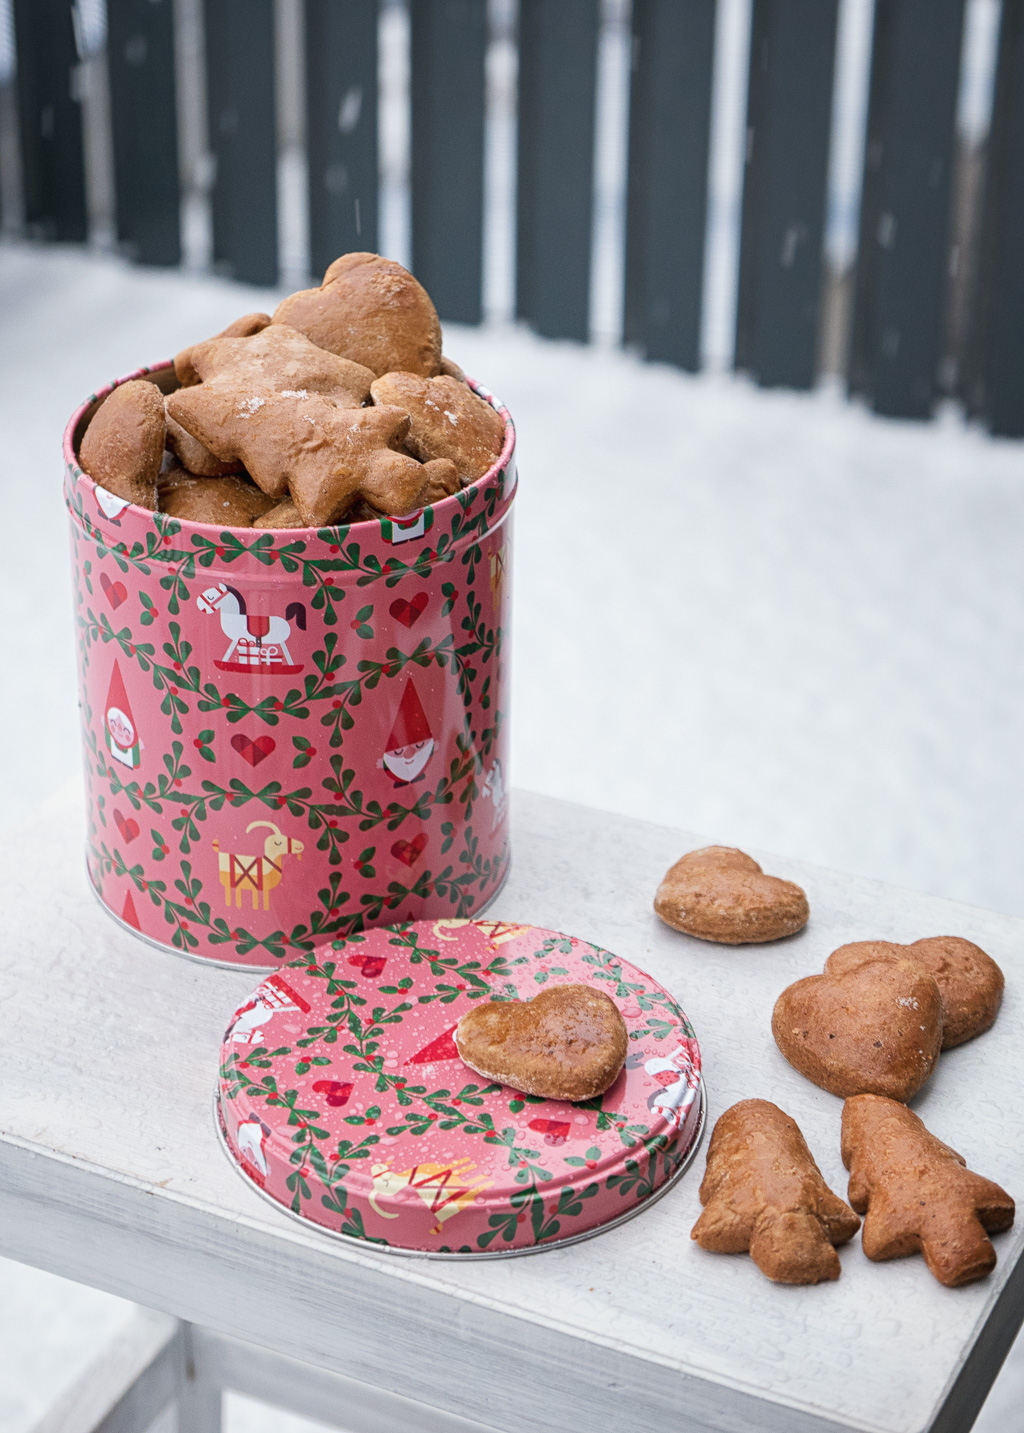 Alpine Polish gingerbread cookies